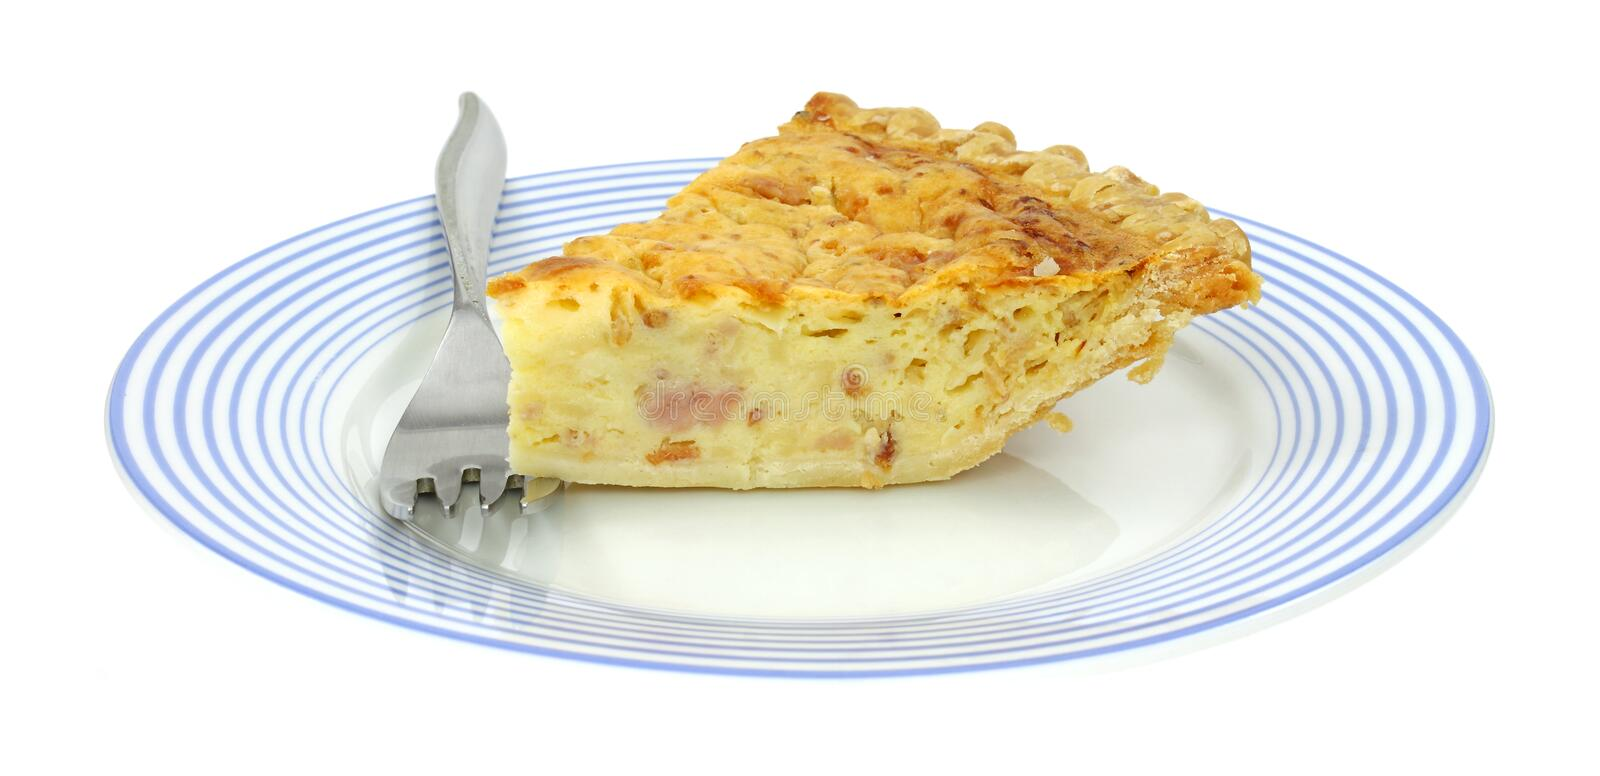 Quiche Lorraine On Plate With Fork Stock Photo